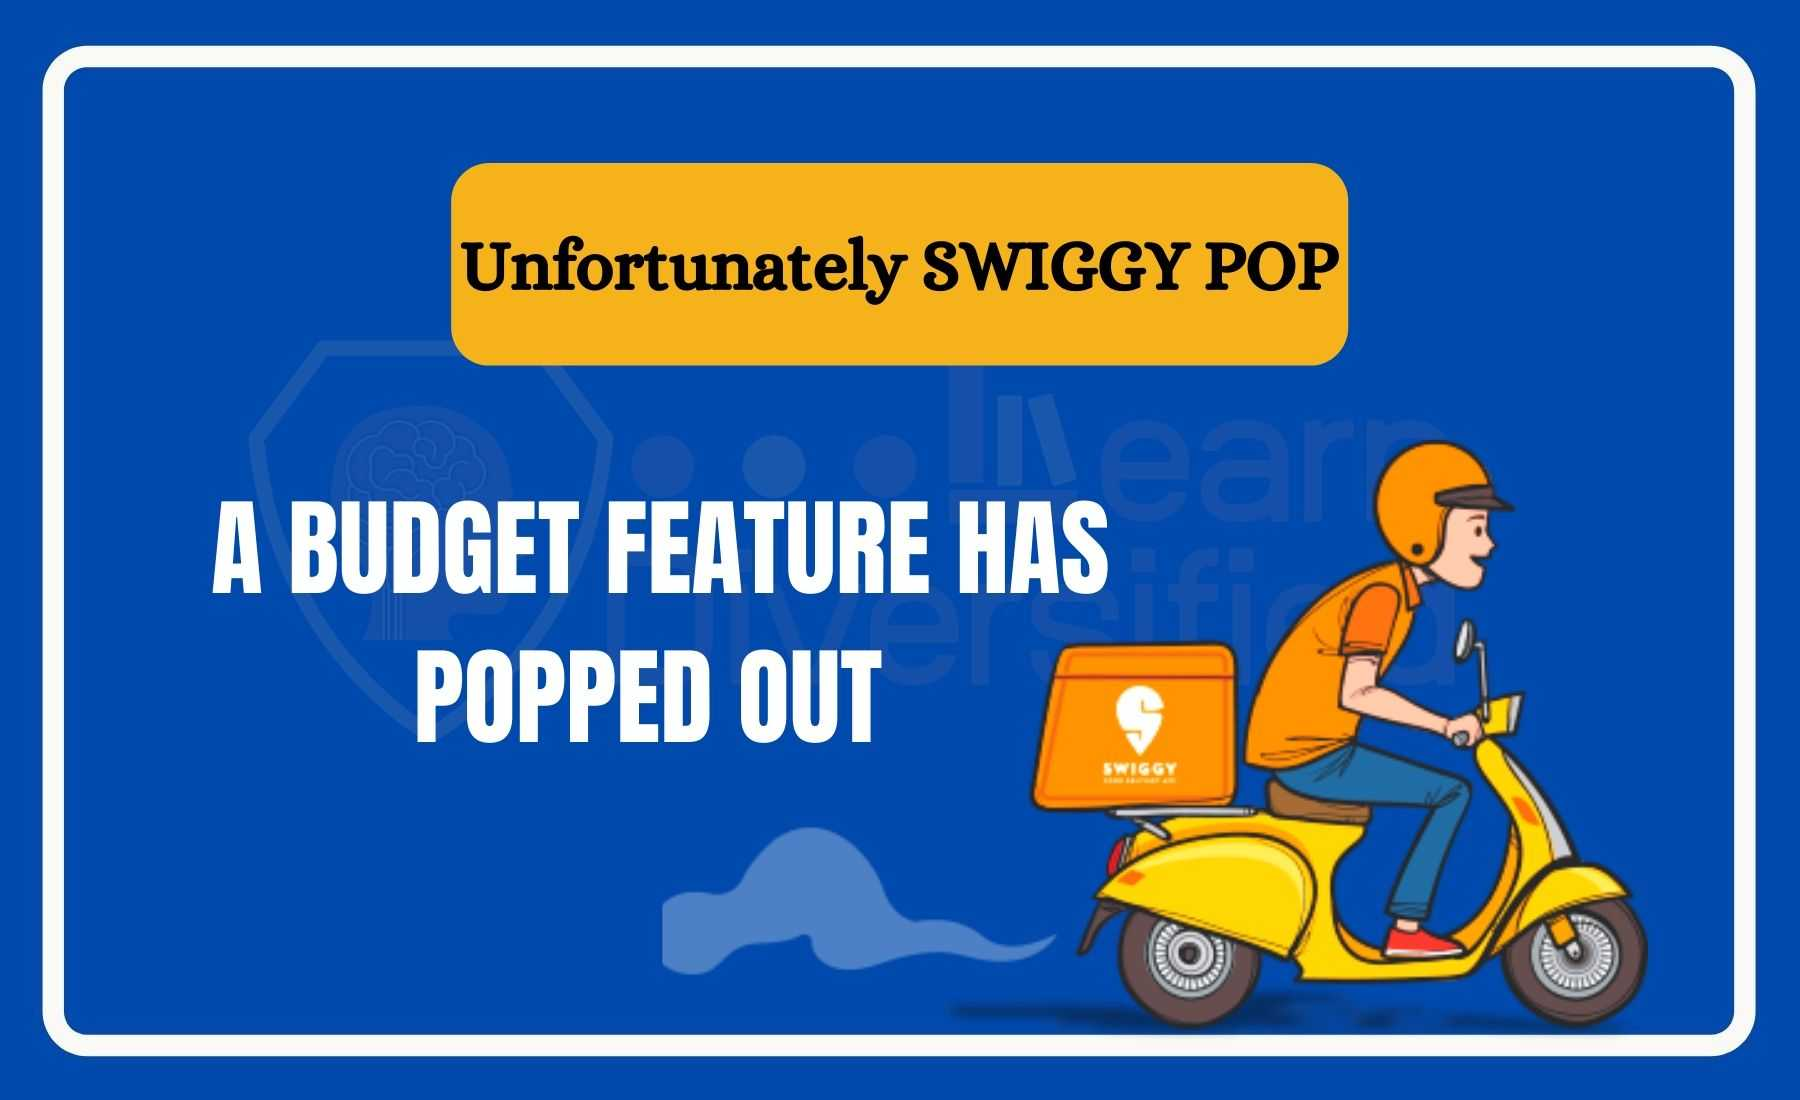 swiggy pop